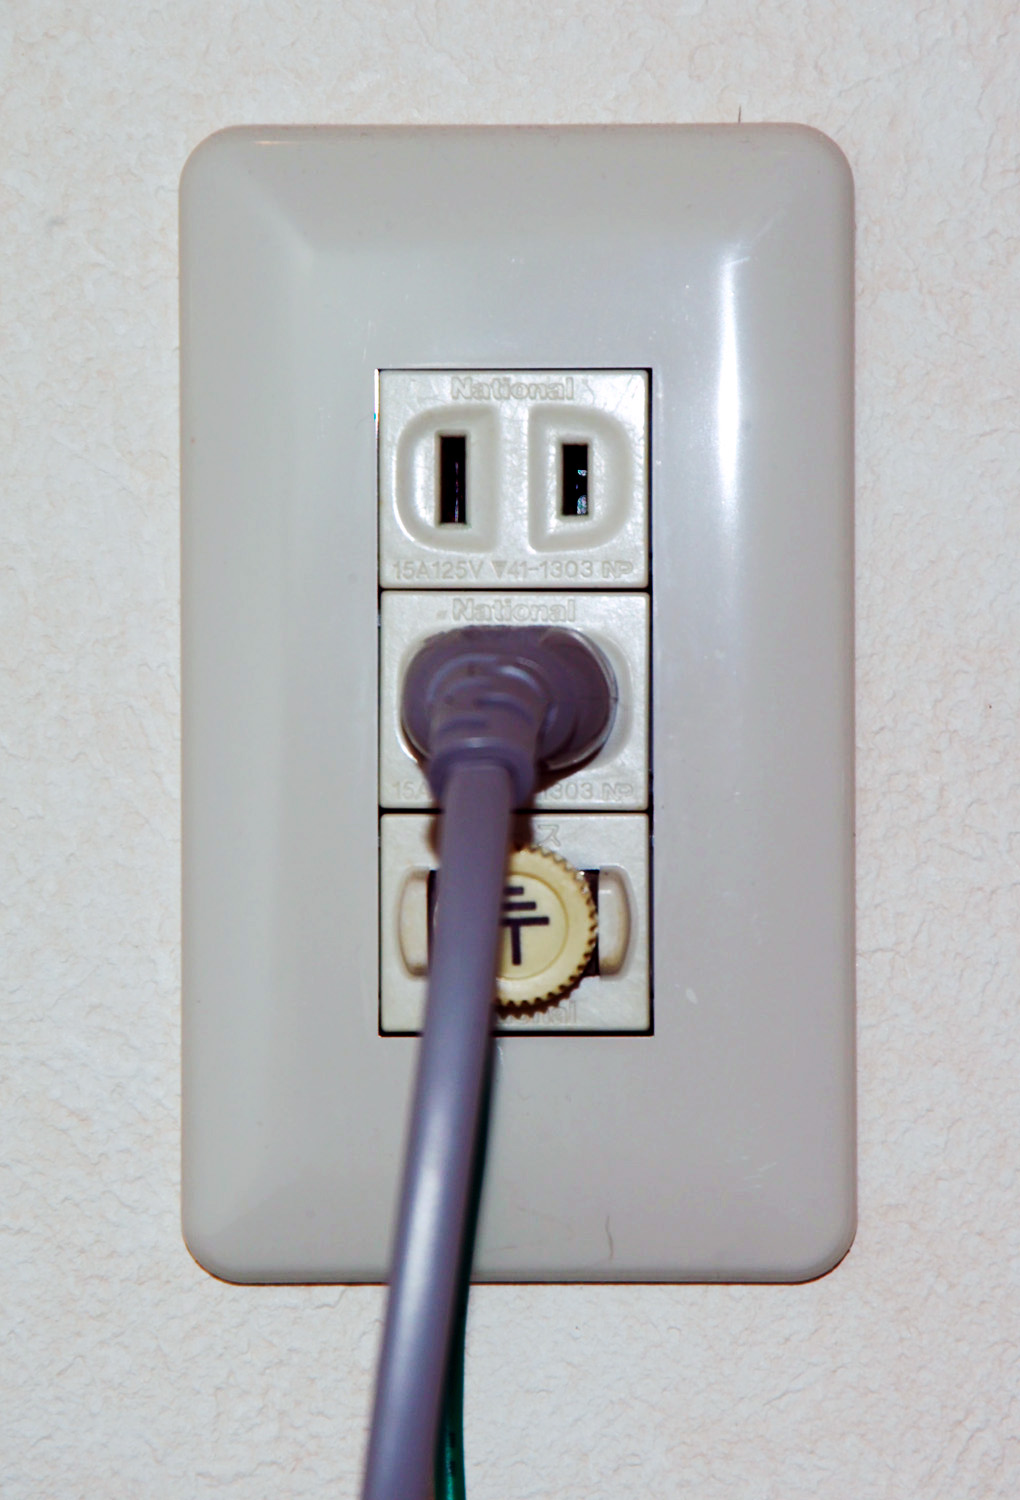 Wall Lamp With Electrical Outlet : Power cord - Wikipedia